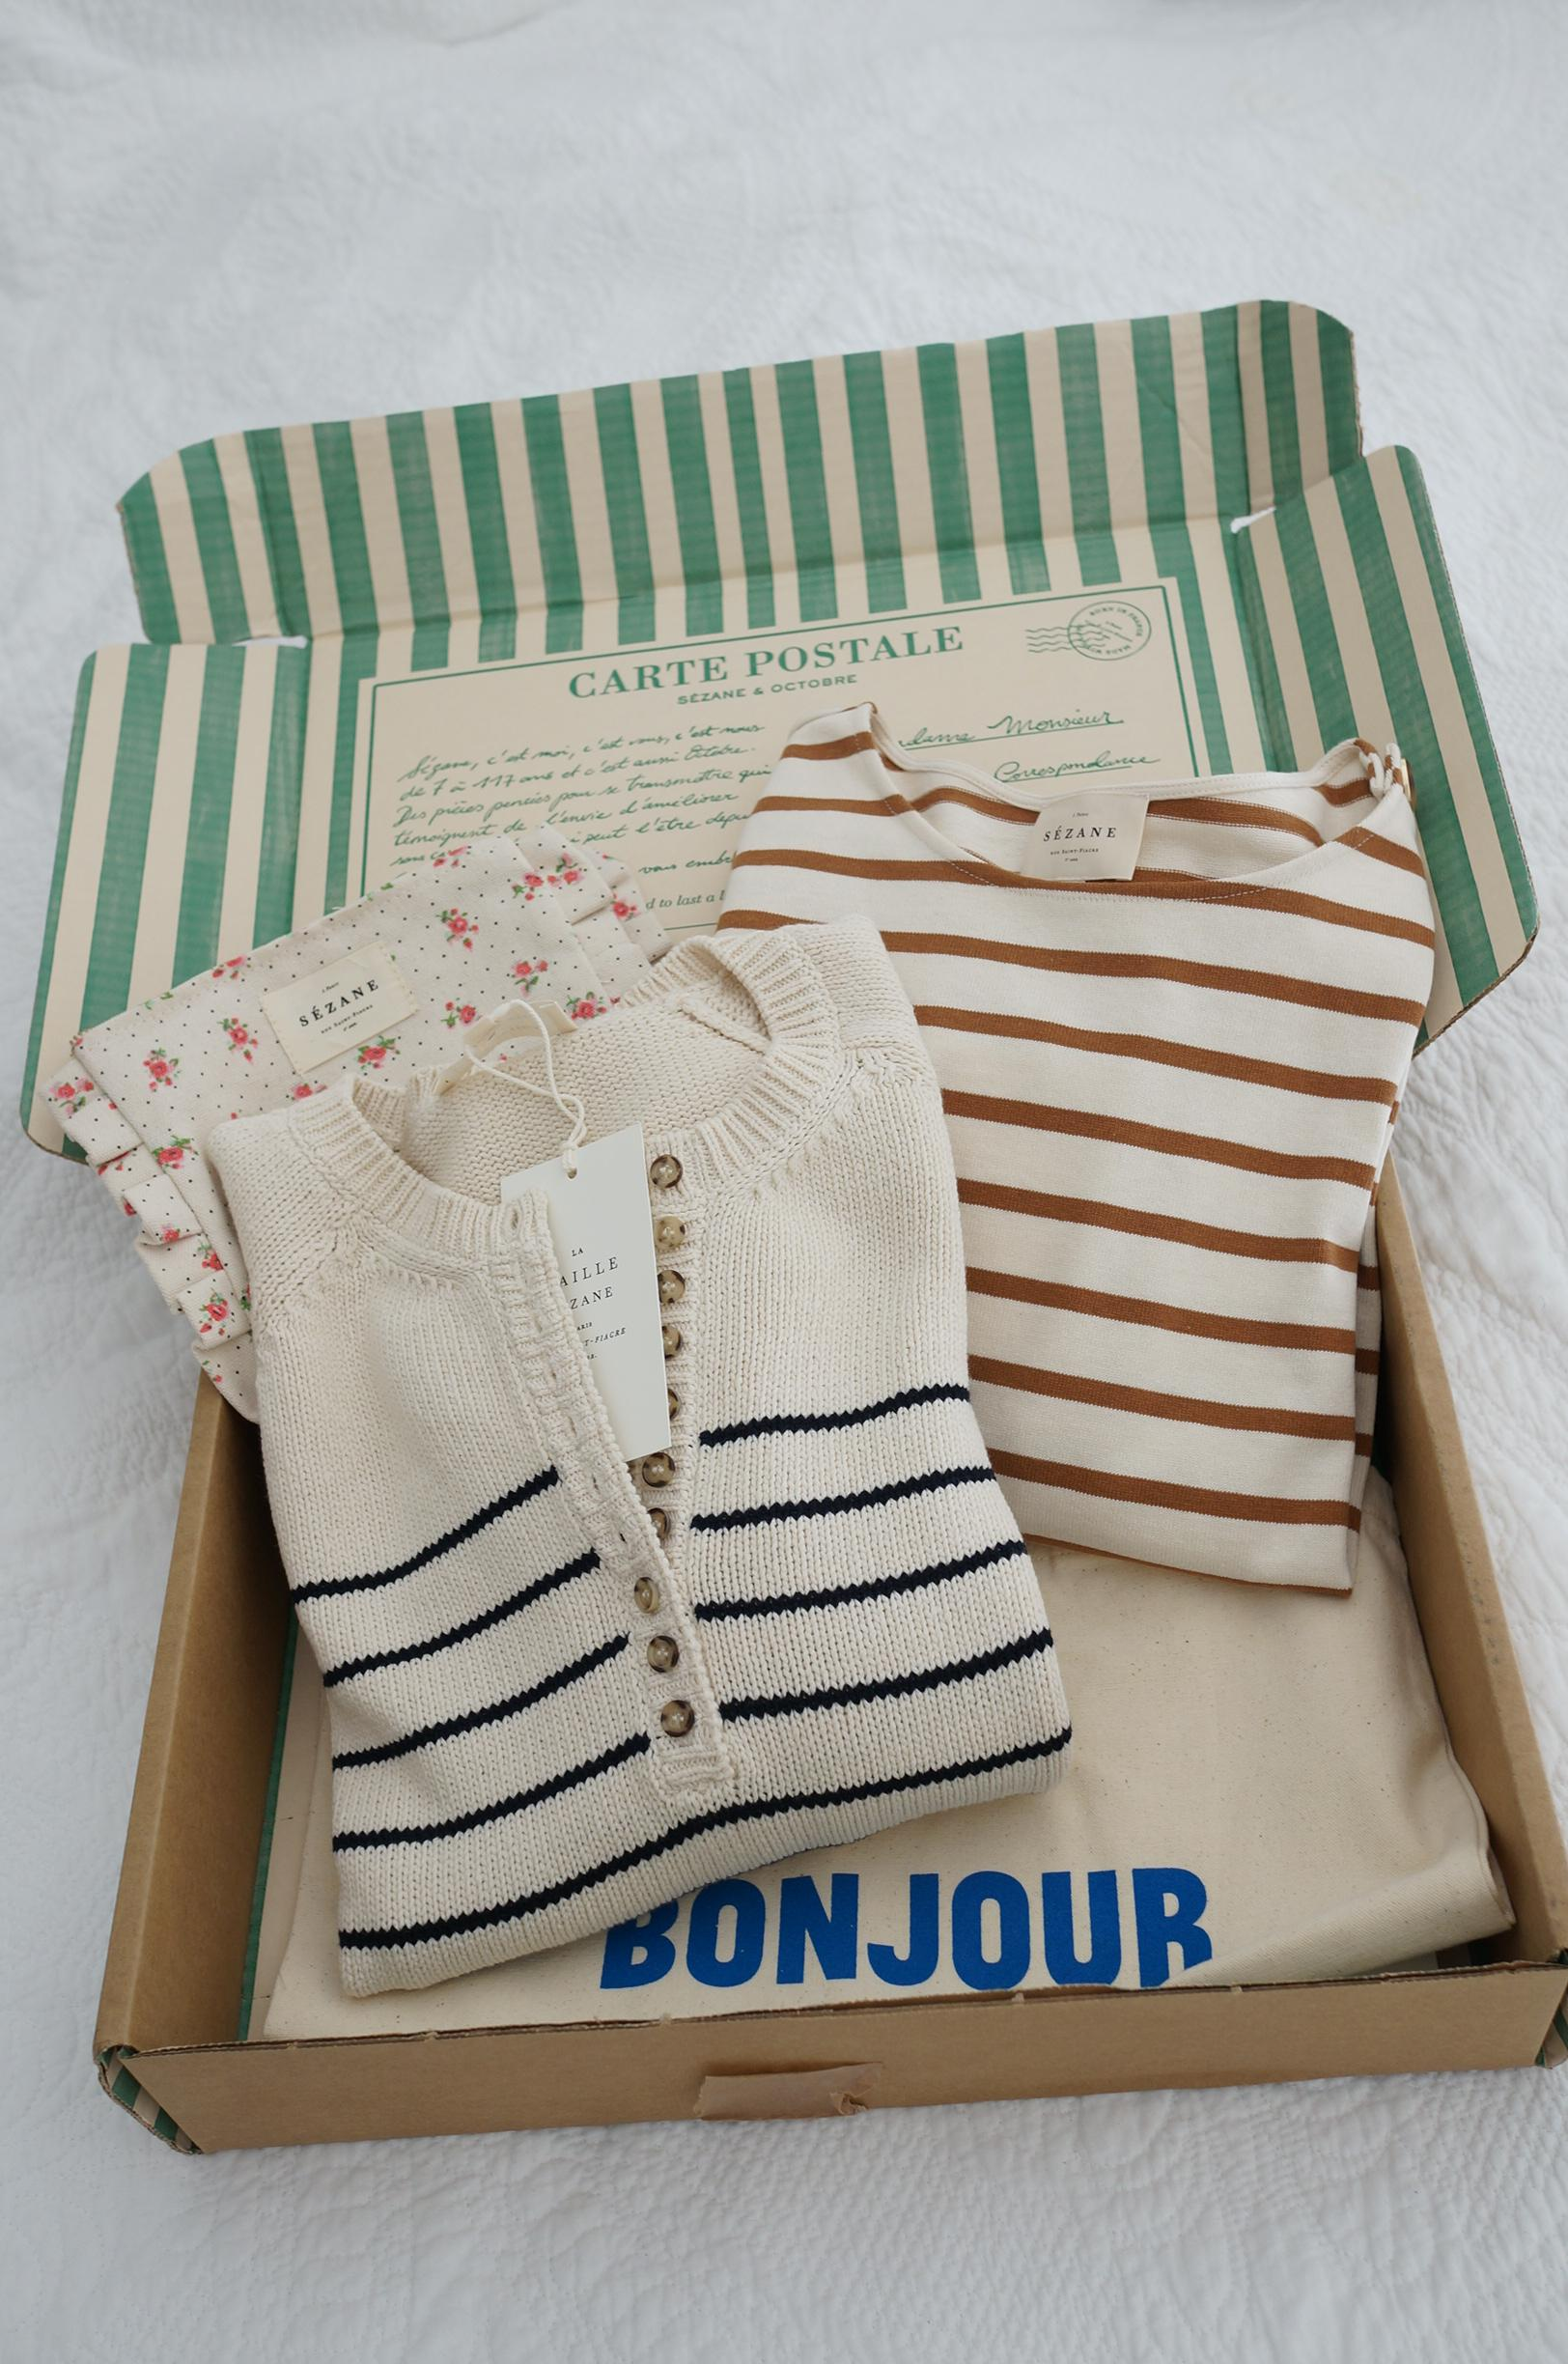 sezane first impressions of first ever order and try-on of leontine knit and colette mariniere